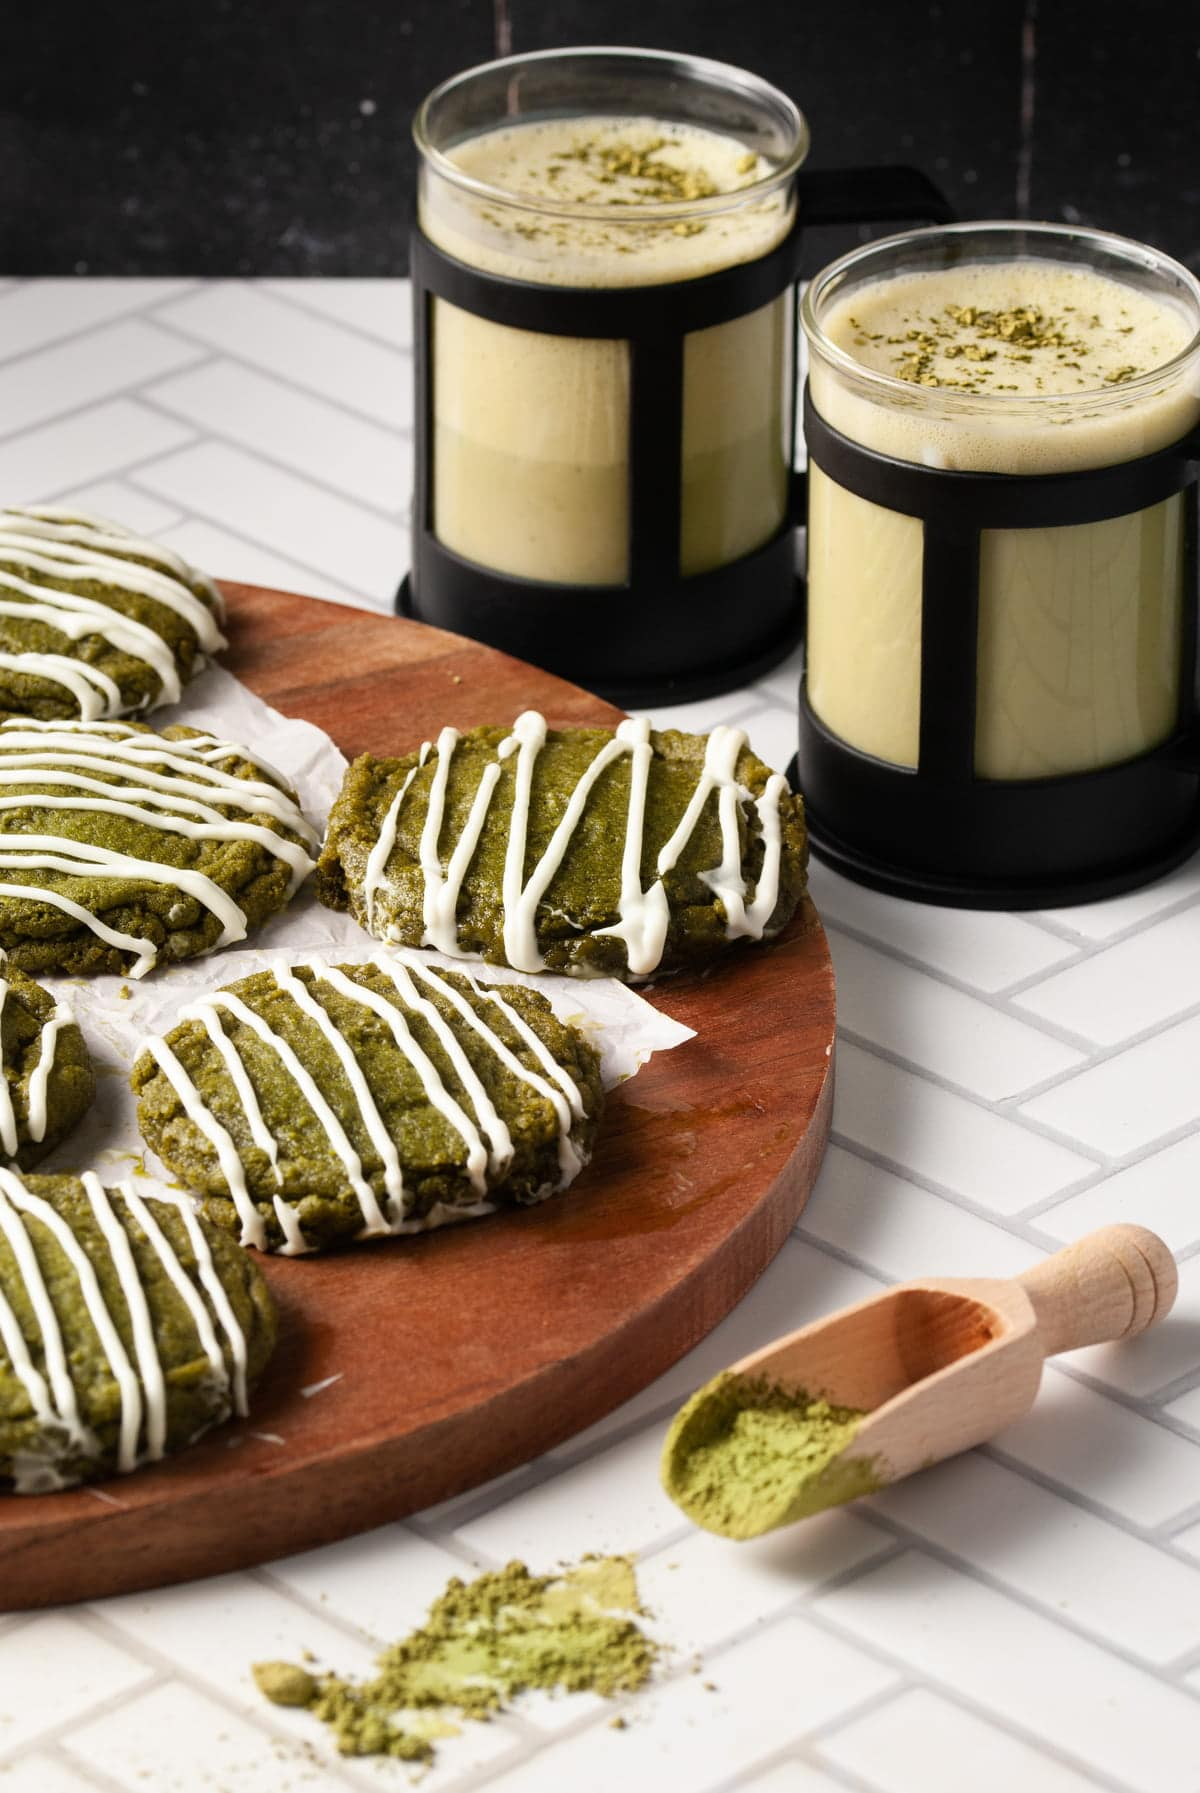 green cookies with white chocolate drizzle with two green lattes behing it